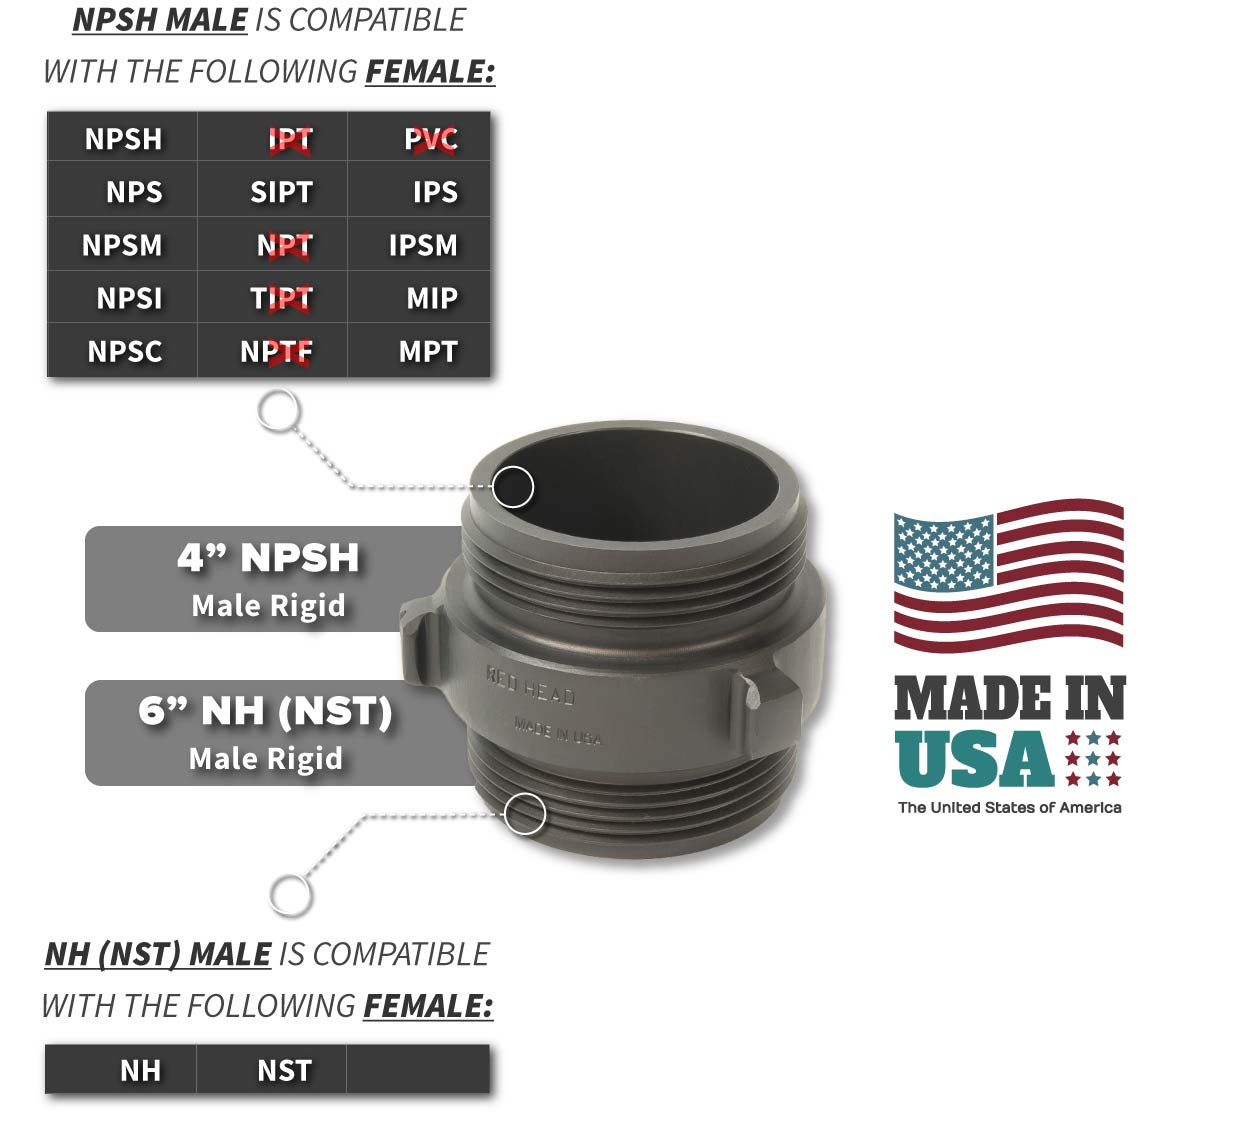 4 Inch NPSH Male x 6 Inch NH-NST Male Compatibility Thread Chart